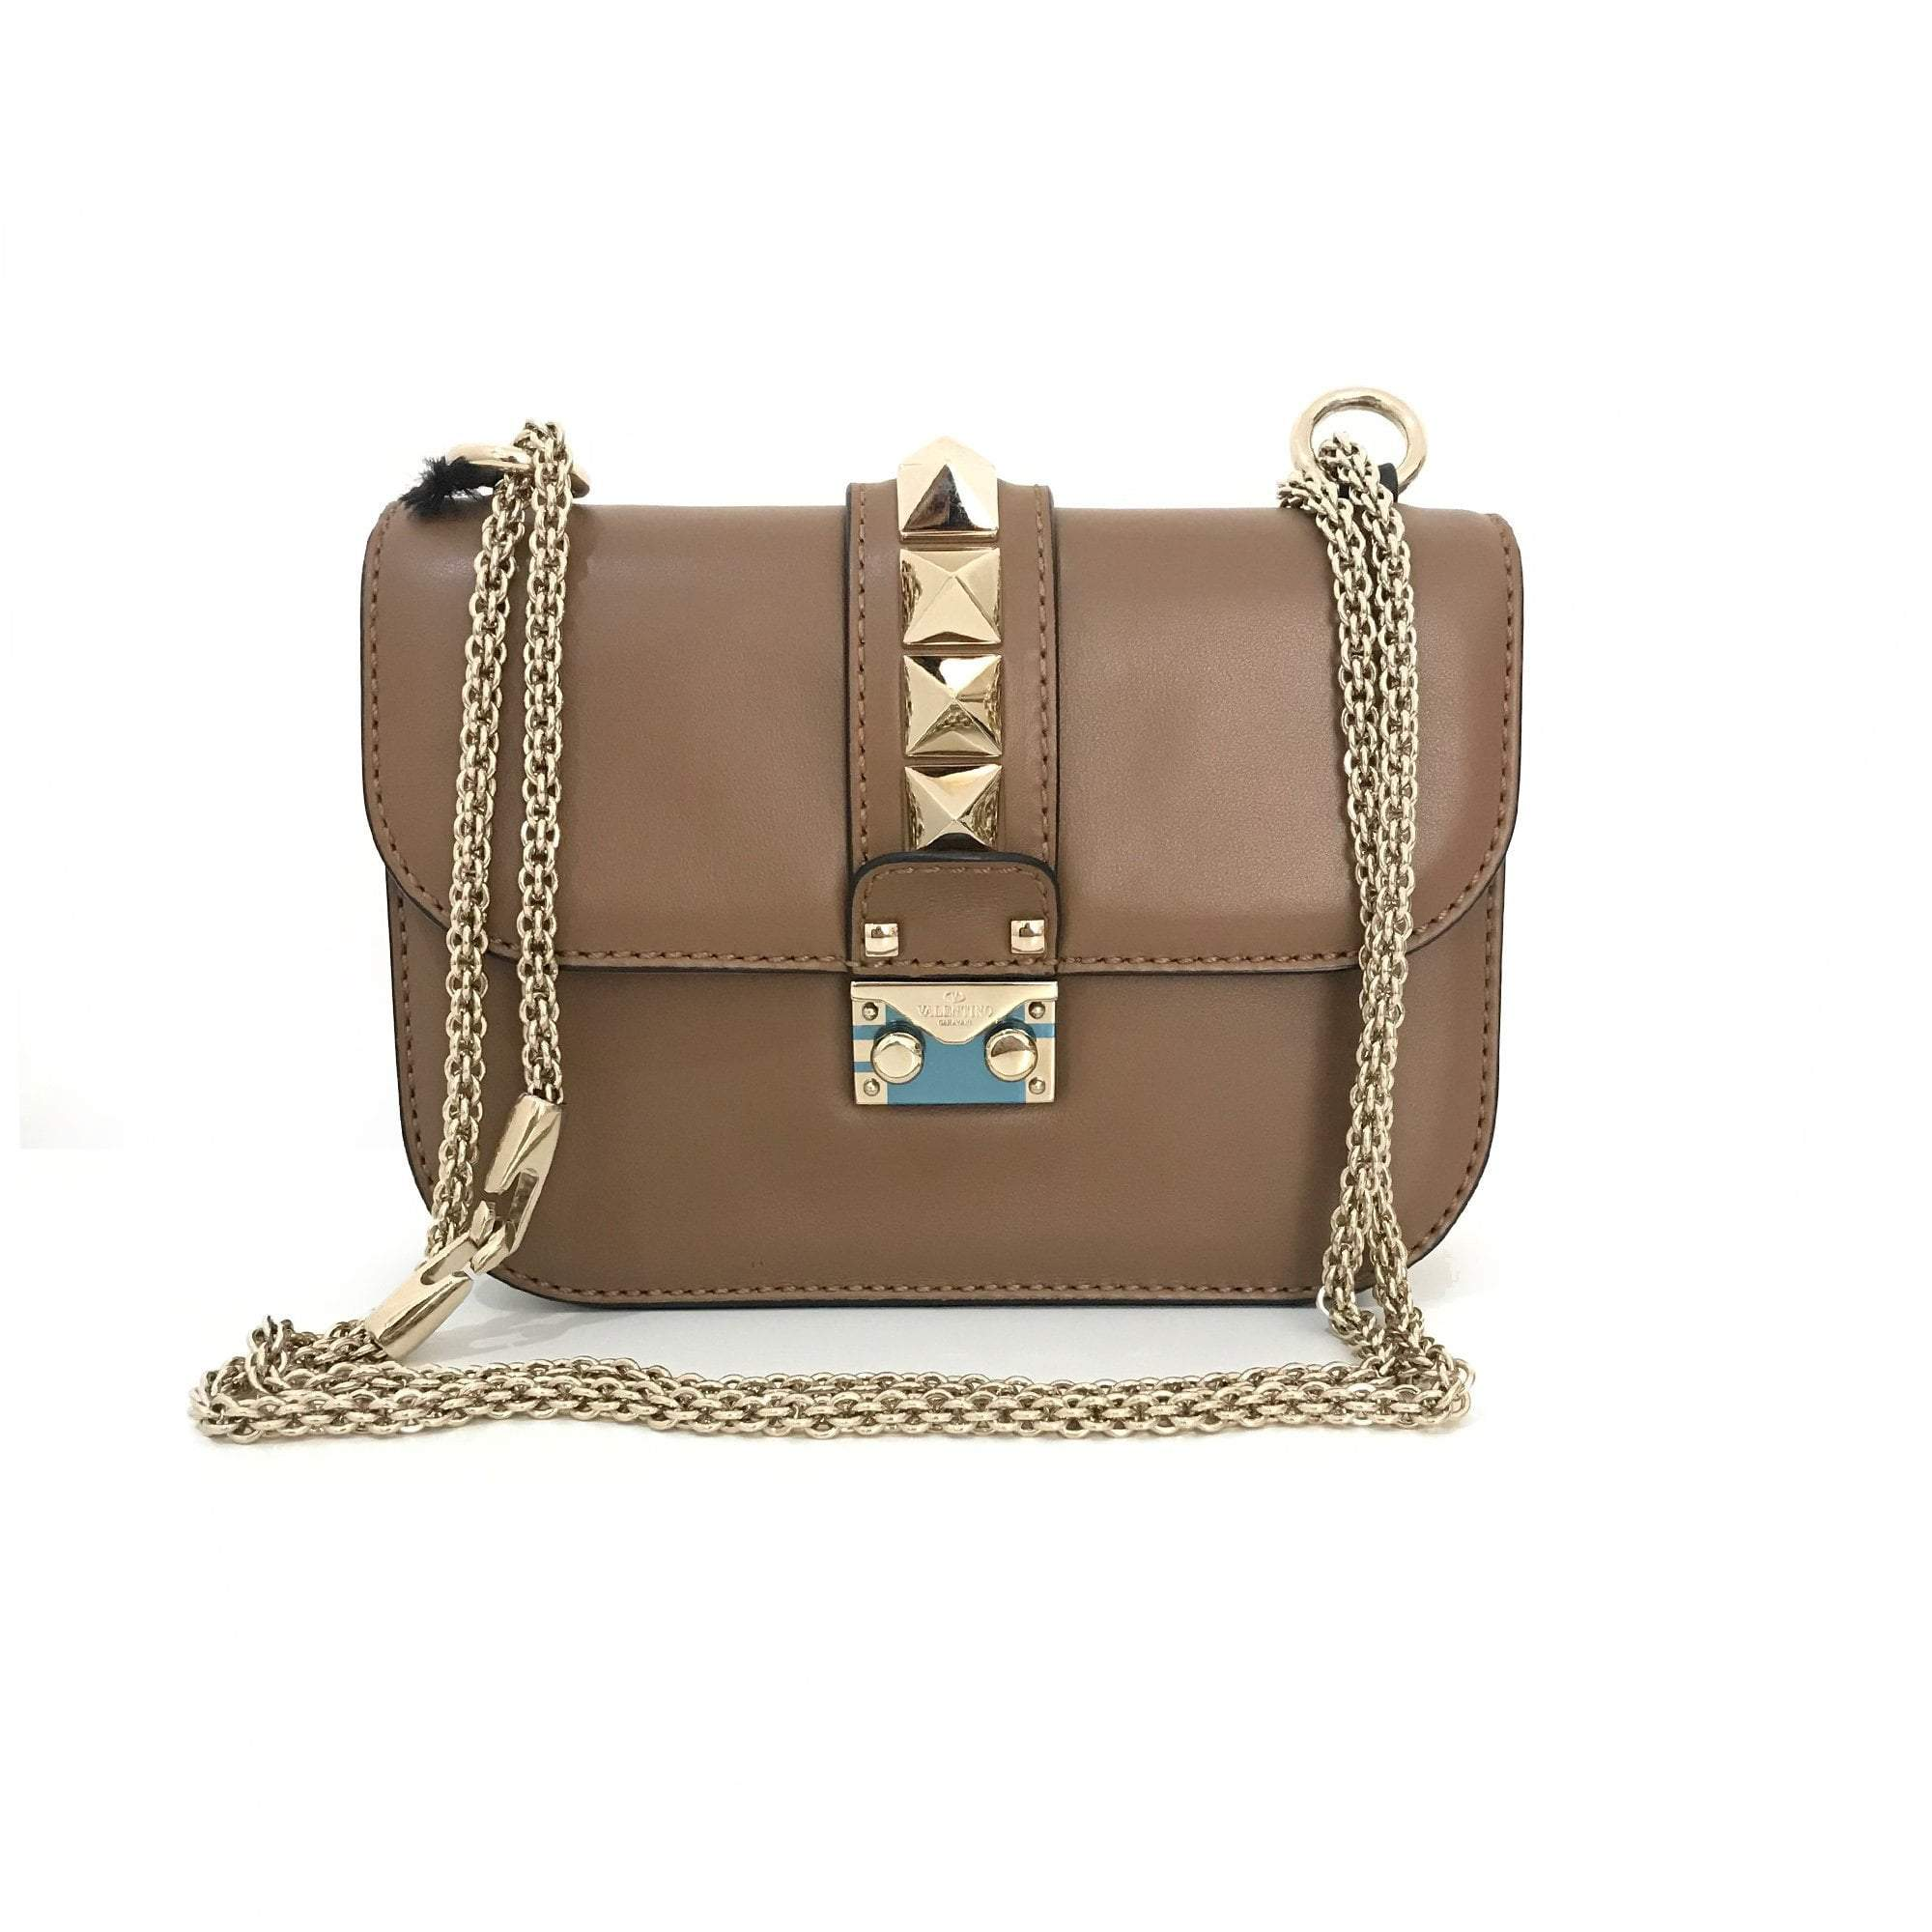 Valentino 'Glam Lock' Small Brown Shoulder bag